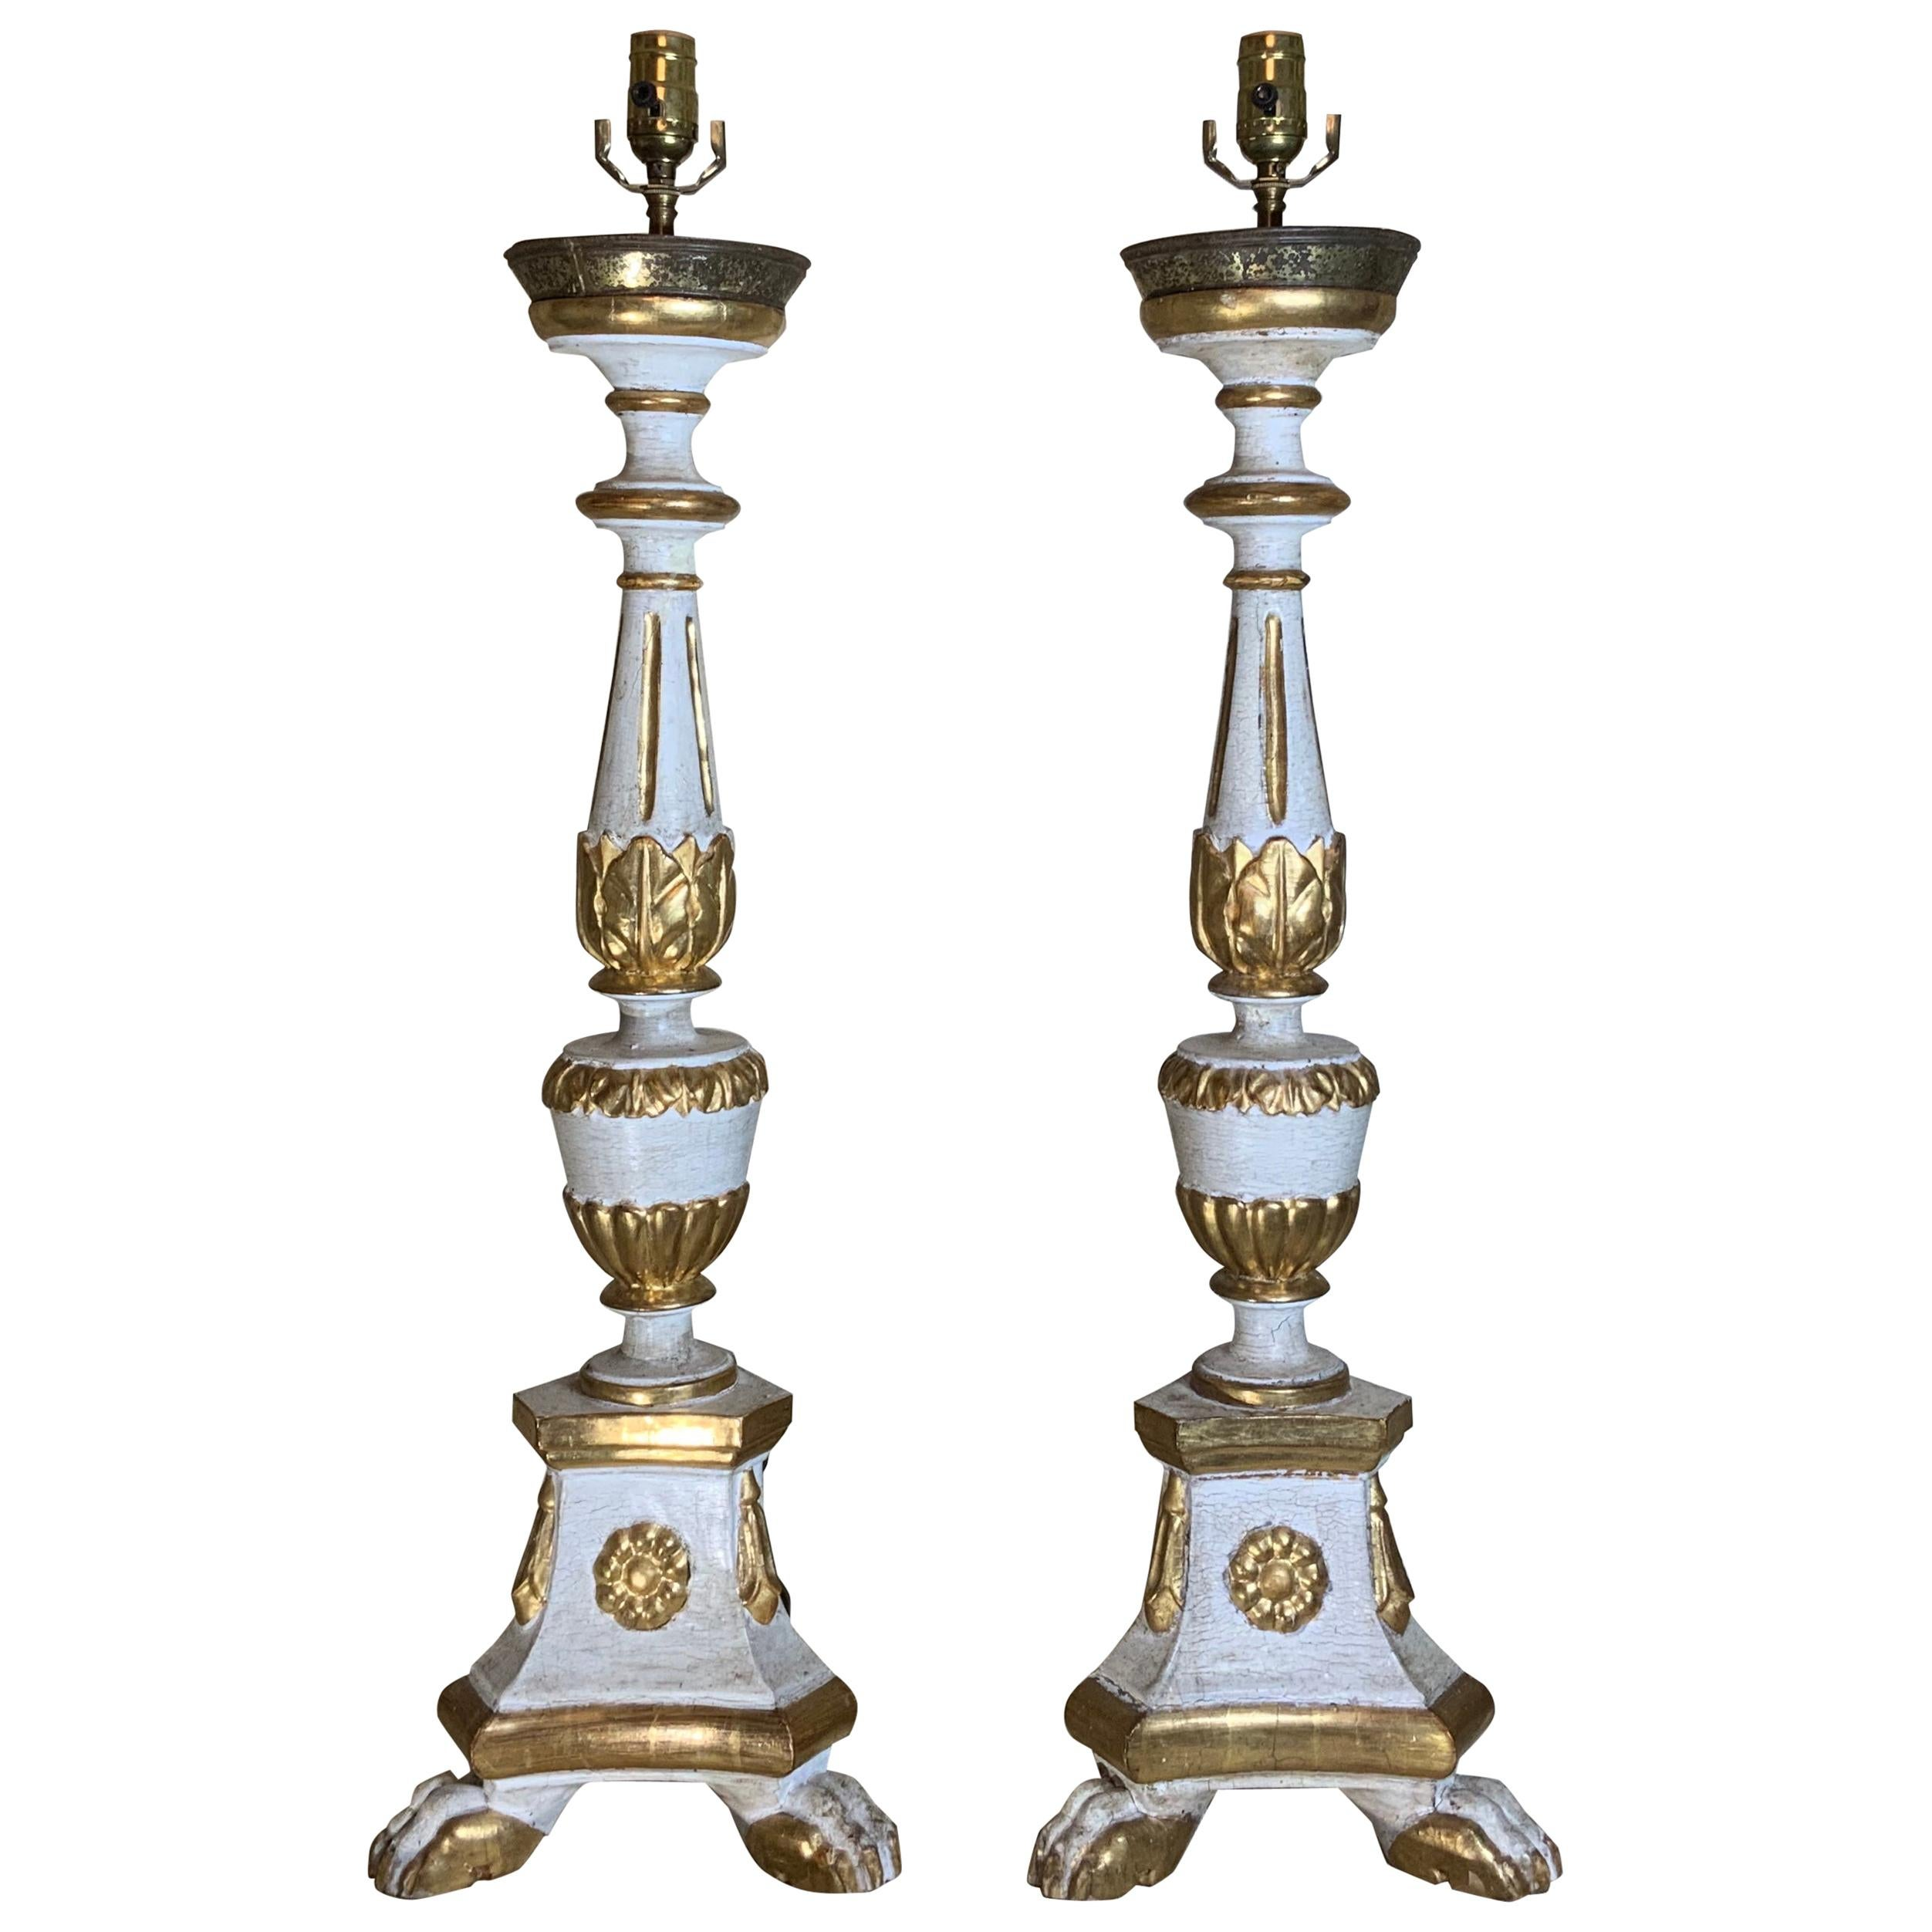 Pair of Neoclassical Italian Carved Gold Giltwood Candlestick Table Lamps